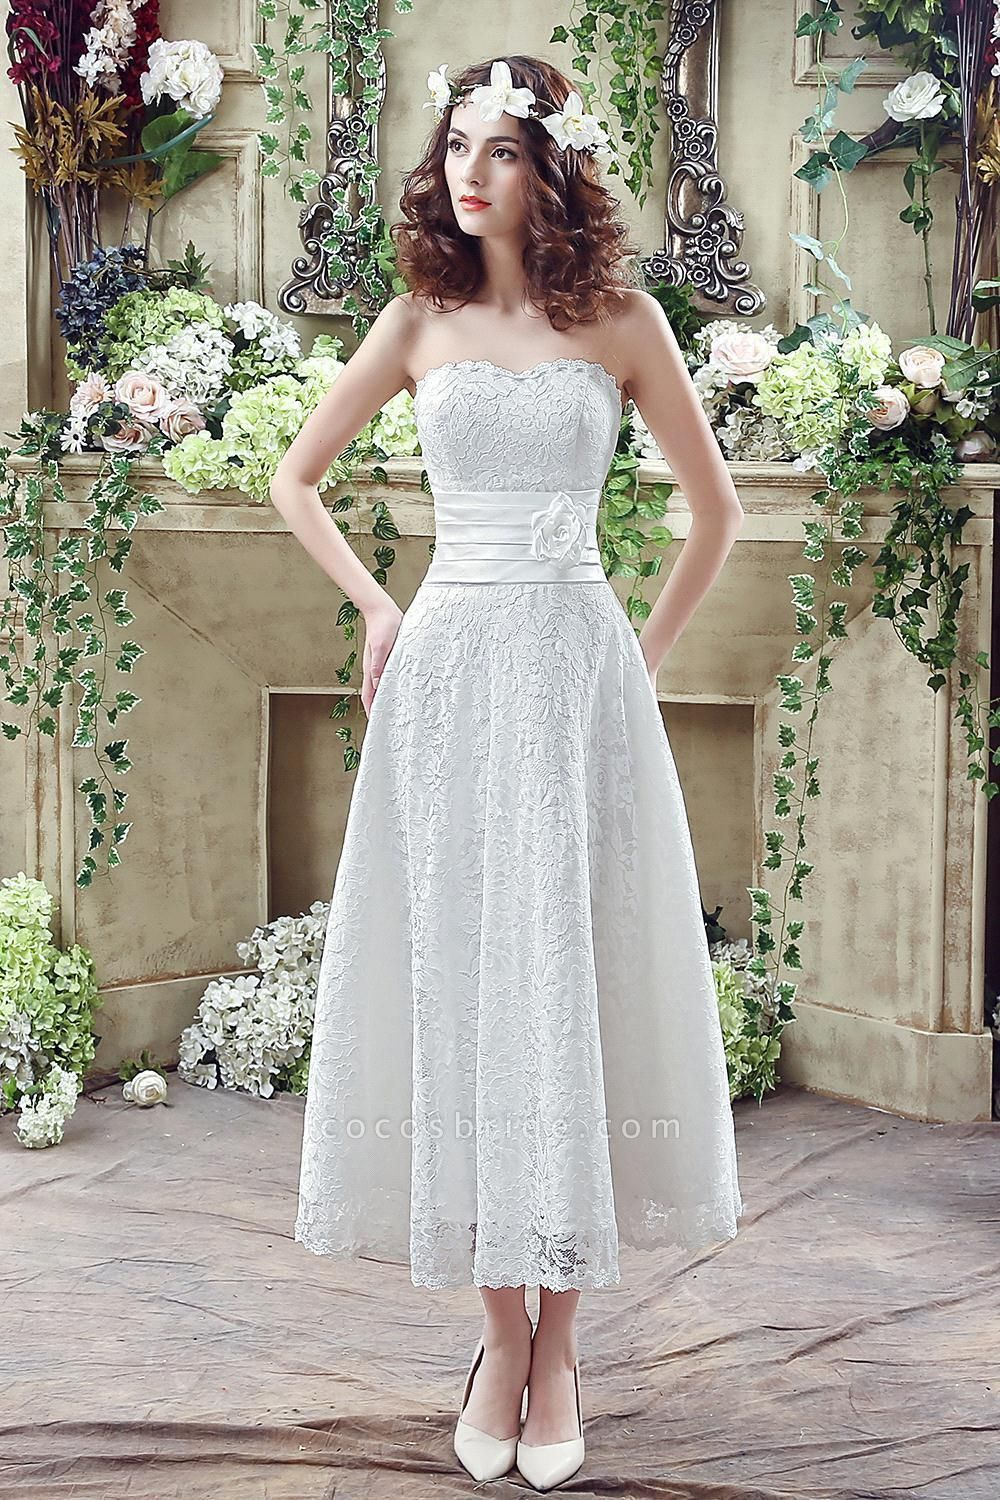 Sweetheart Lace Wedding Dress Ankle Length Empire Bridal Gown